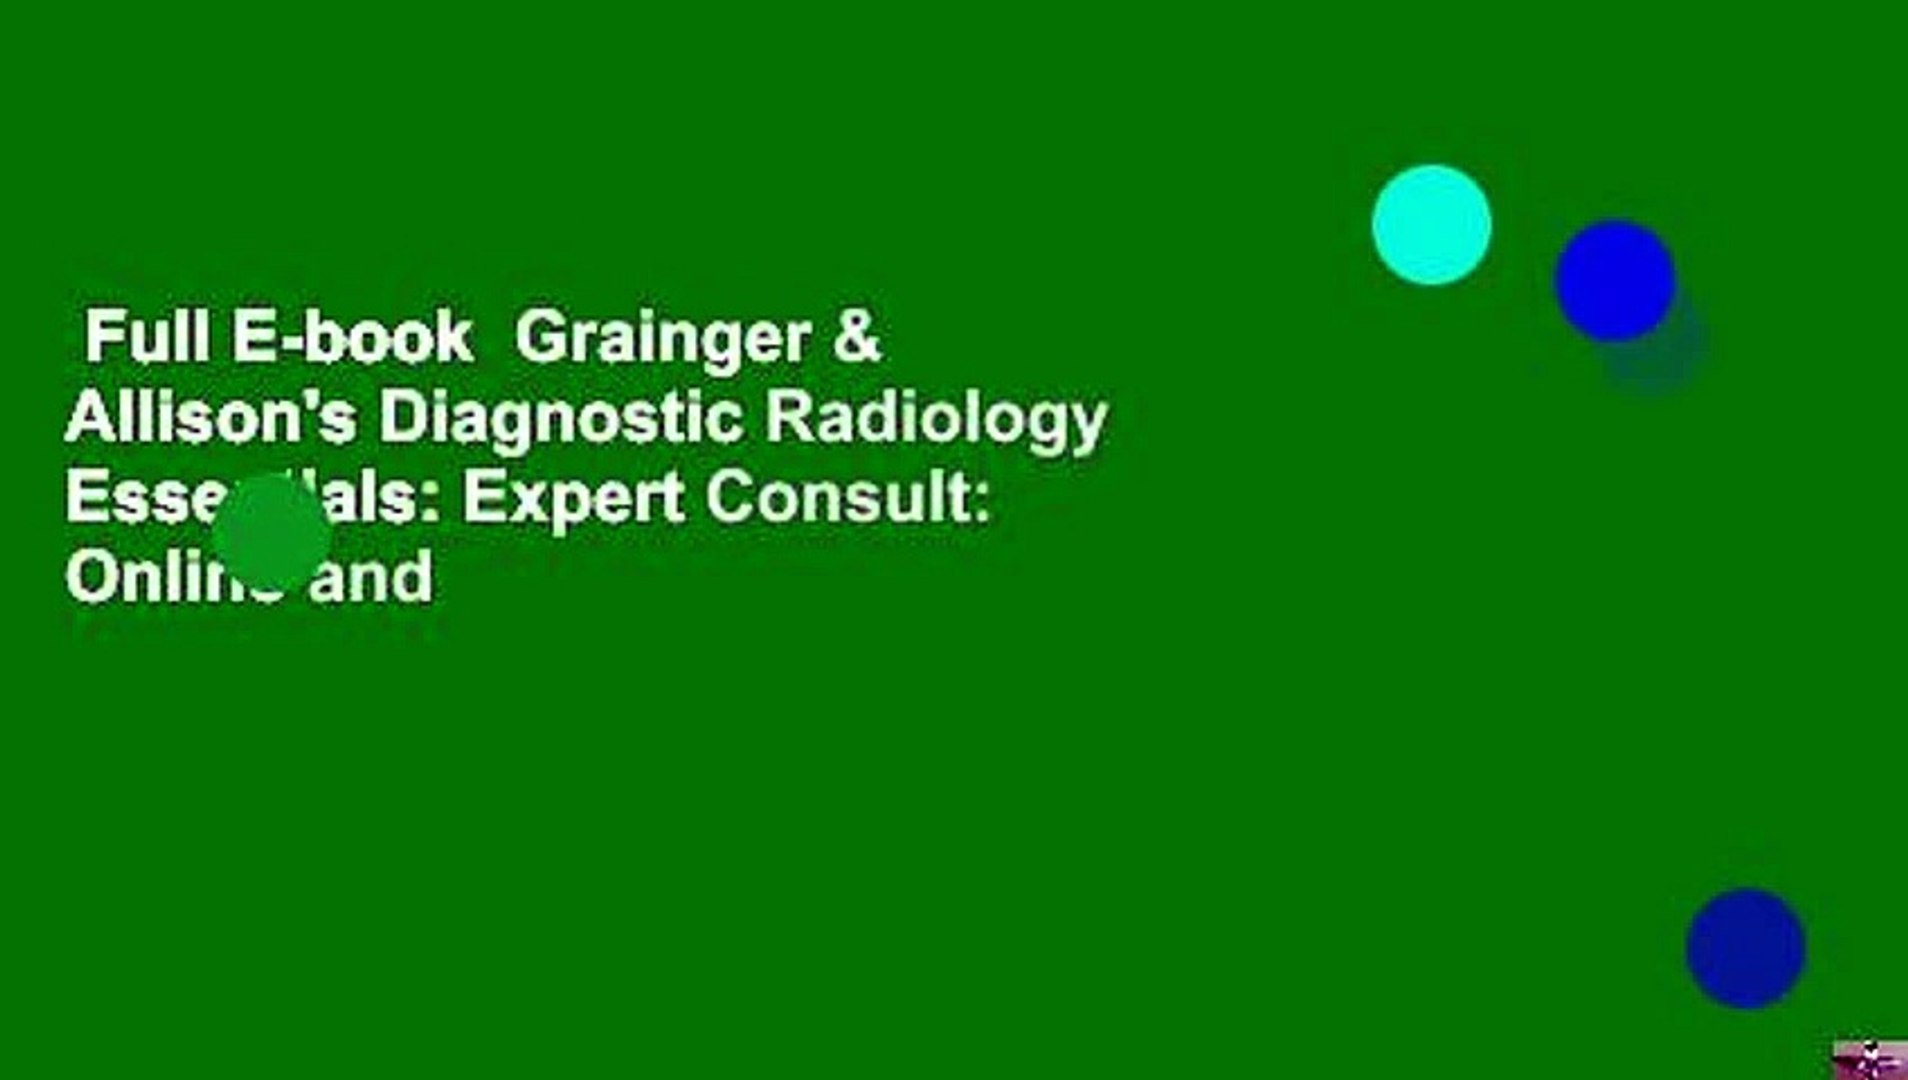 Full E Book Grainger Allison S Diagnostic Radiology Essentials Expert Consult Online And Video Dailymotion